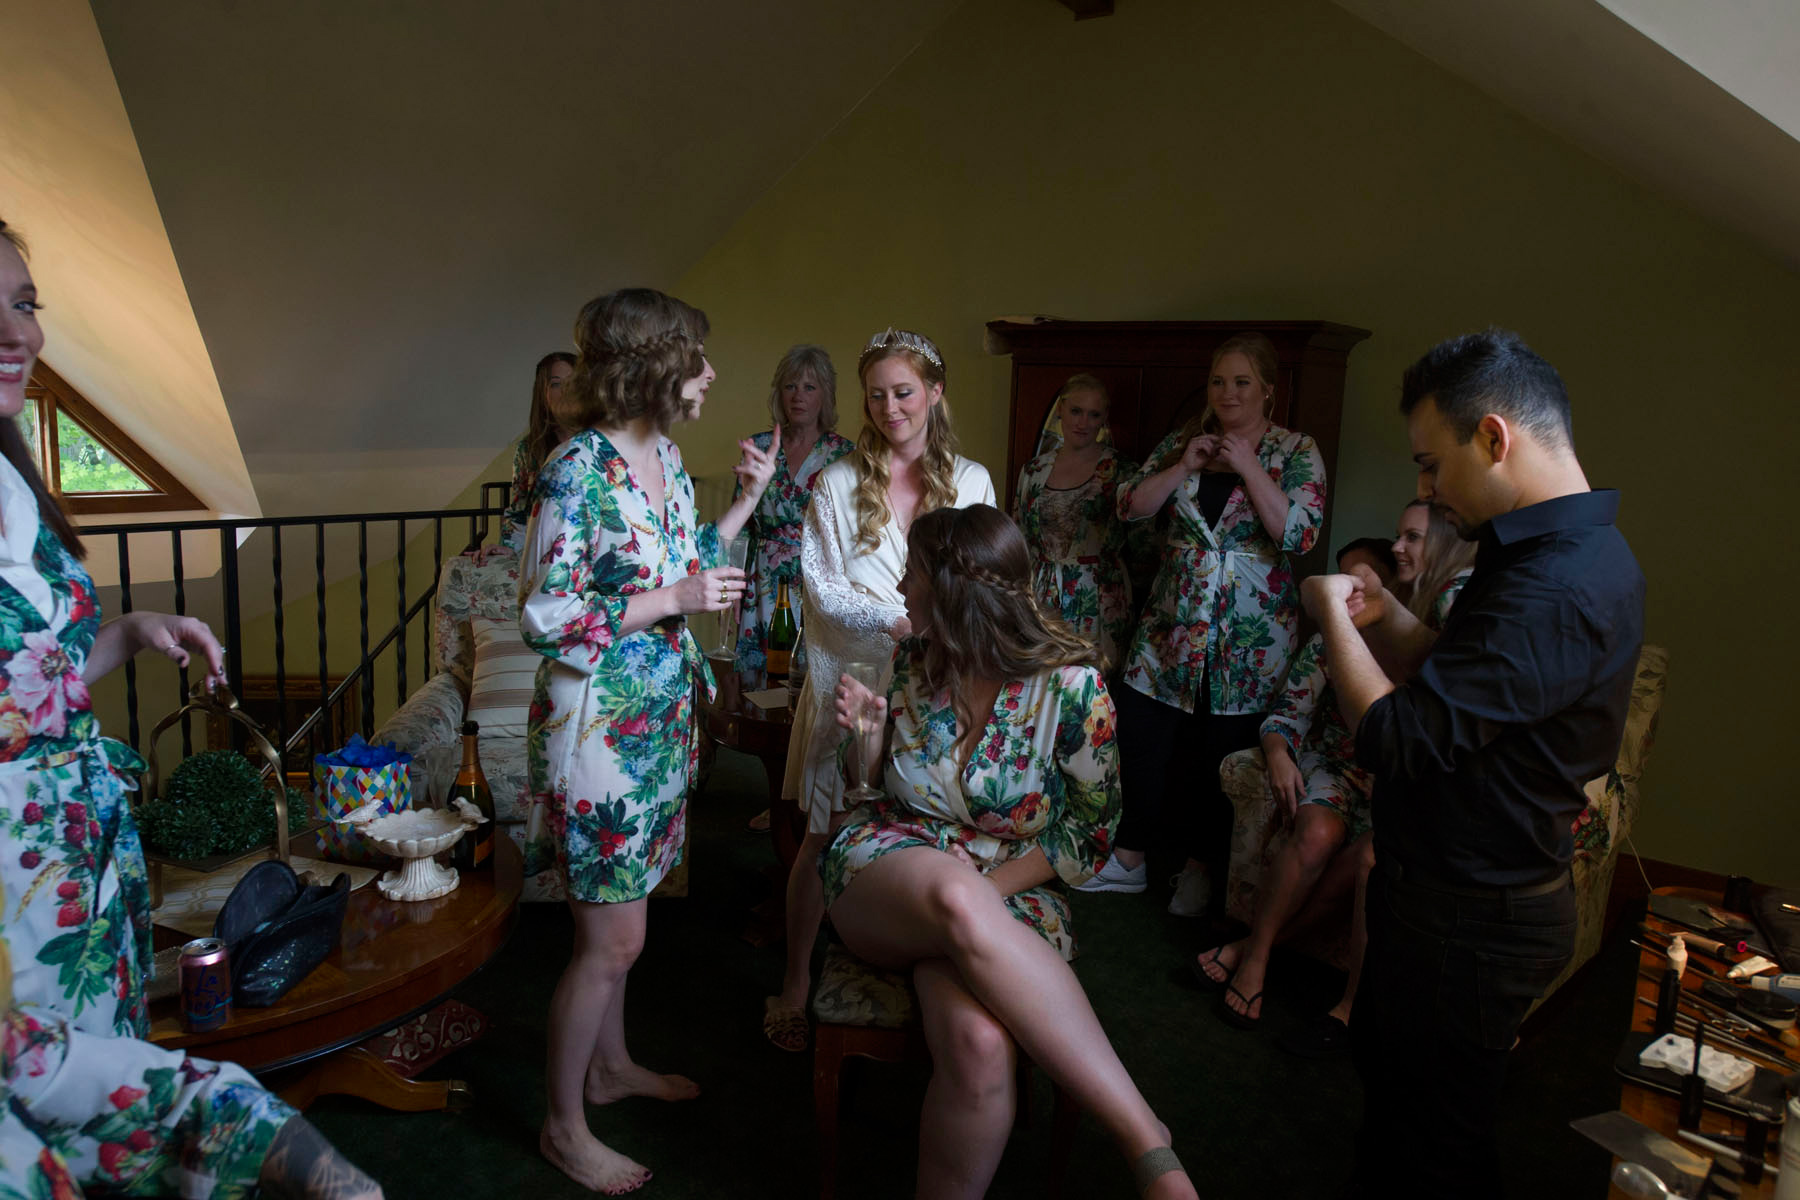 Bucks_County_wedding_photographer_Stroudsmoor_country_inn_wedding_Philadelphia_wedding_photographer_02_Bride_getting_ready_with_bridesmaids_floral_robes_wedding_prep.JPG